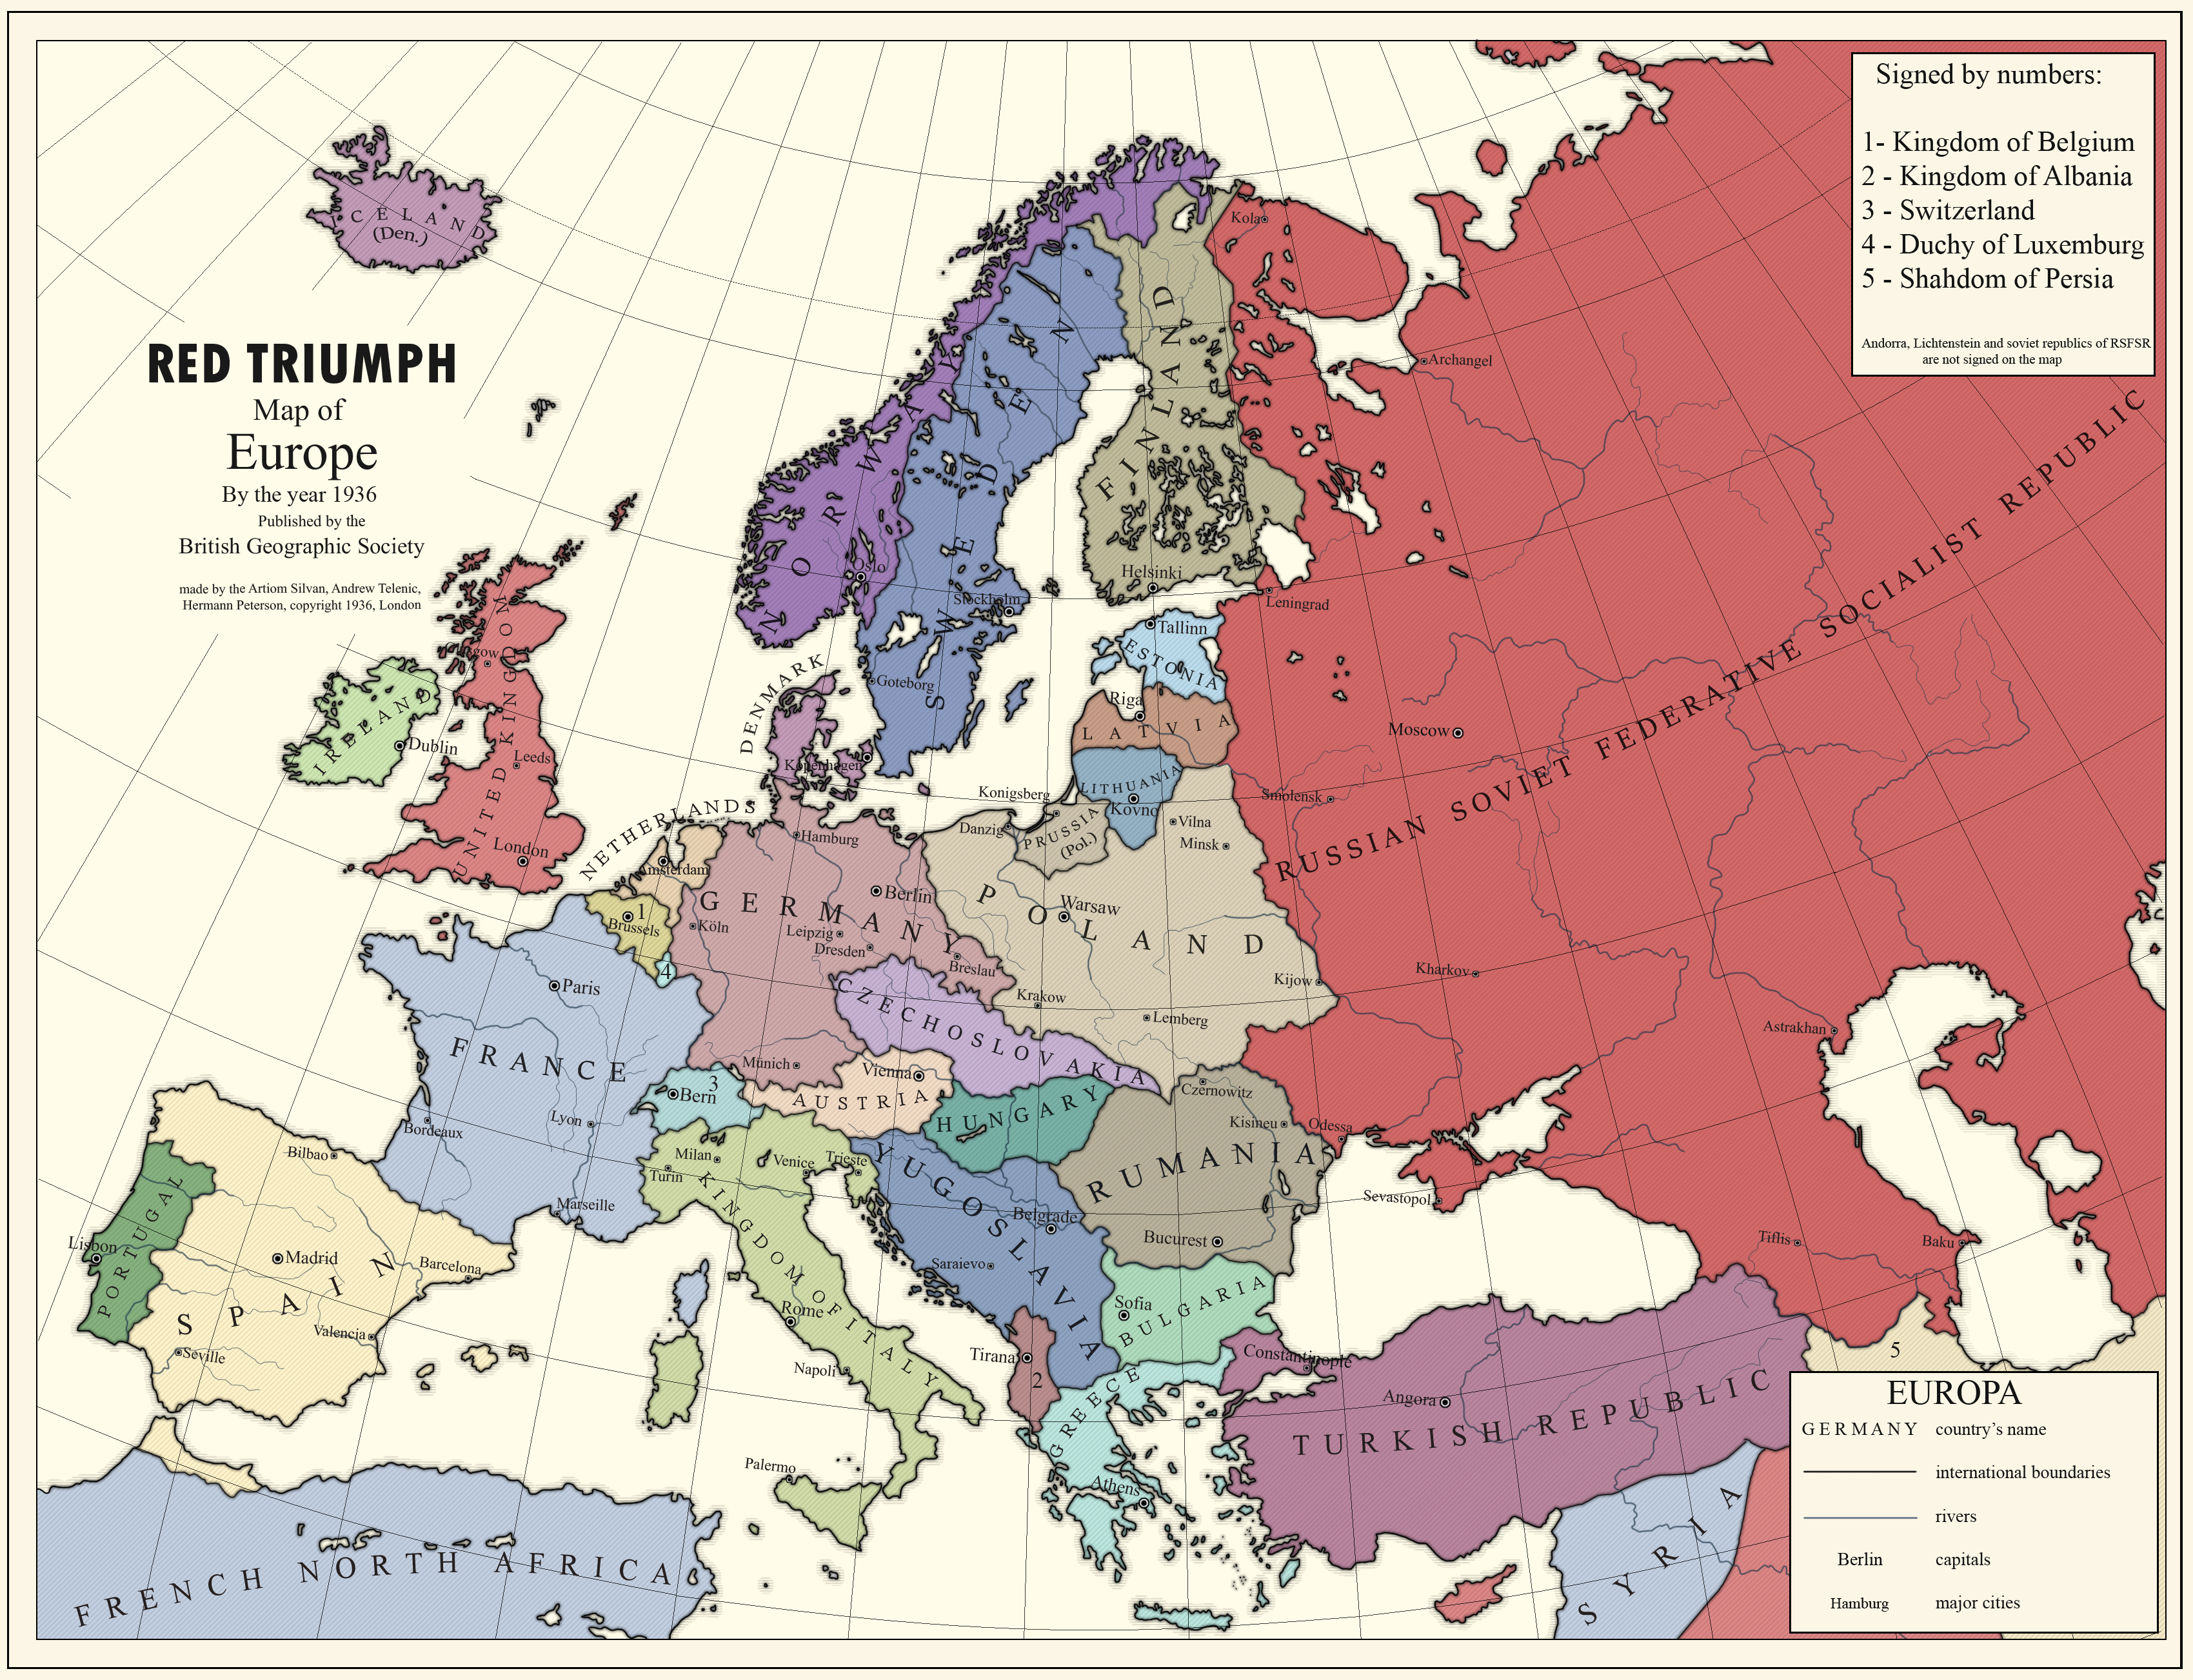 Map Of Europe 1936 RED TRIUMPH] Map of Europe by the 1936 by kreiviskai on DeviantArt